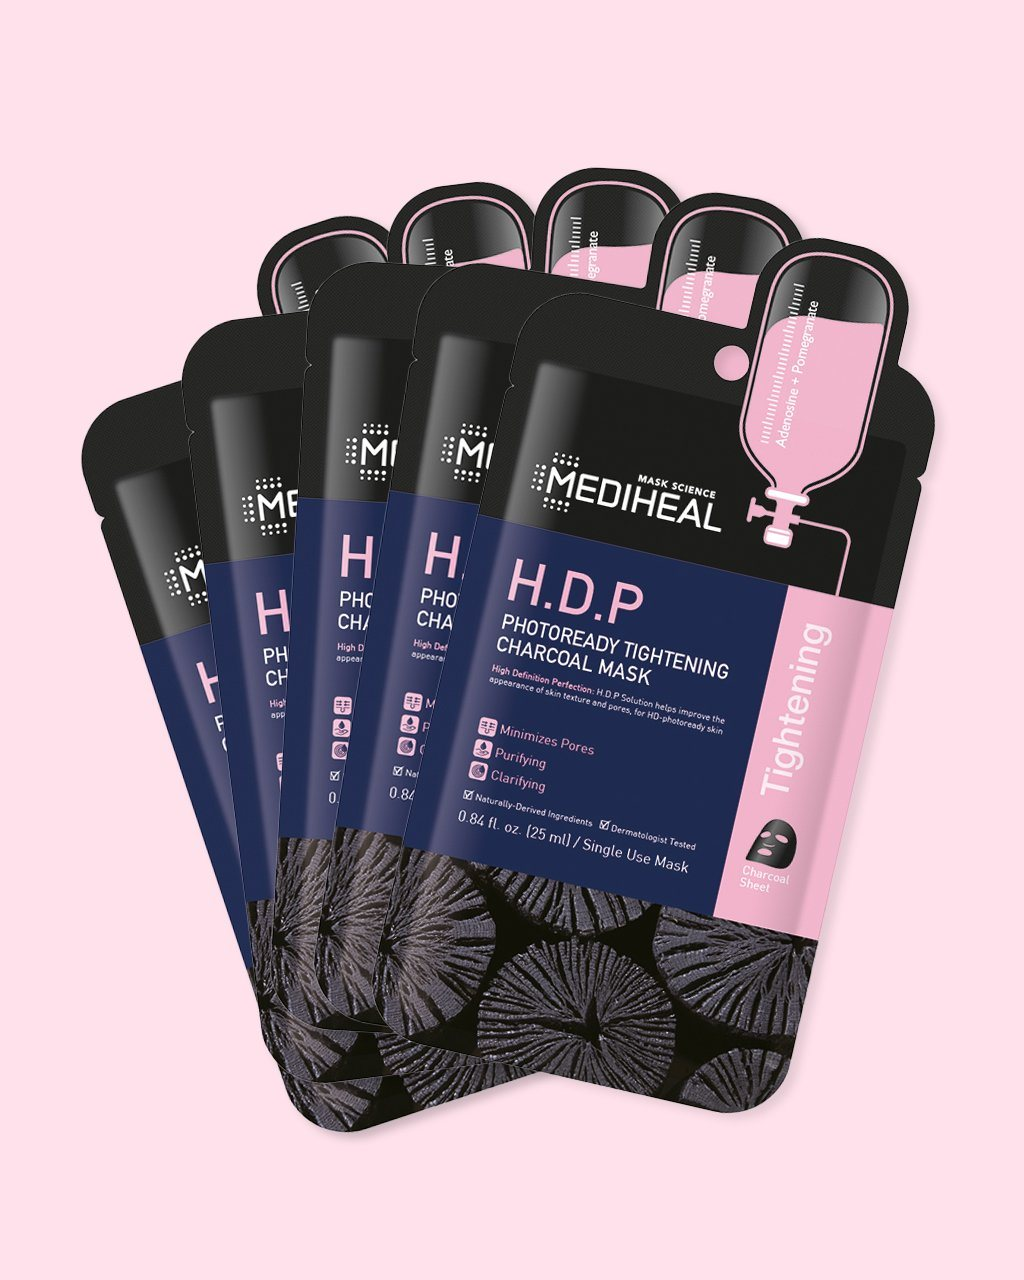 Mediheal H.D.P Photoready Tightening Charcoal Mask (5 pack)